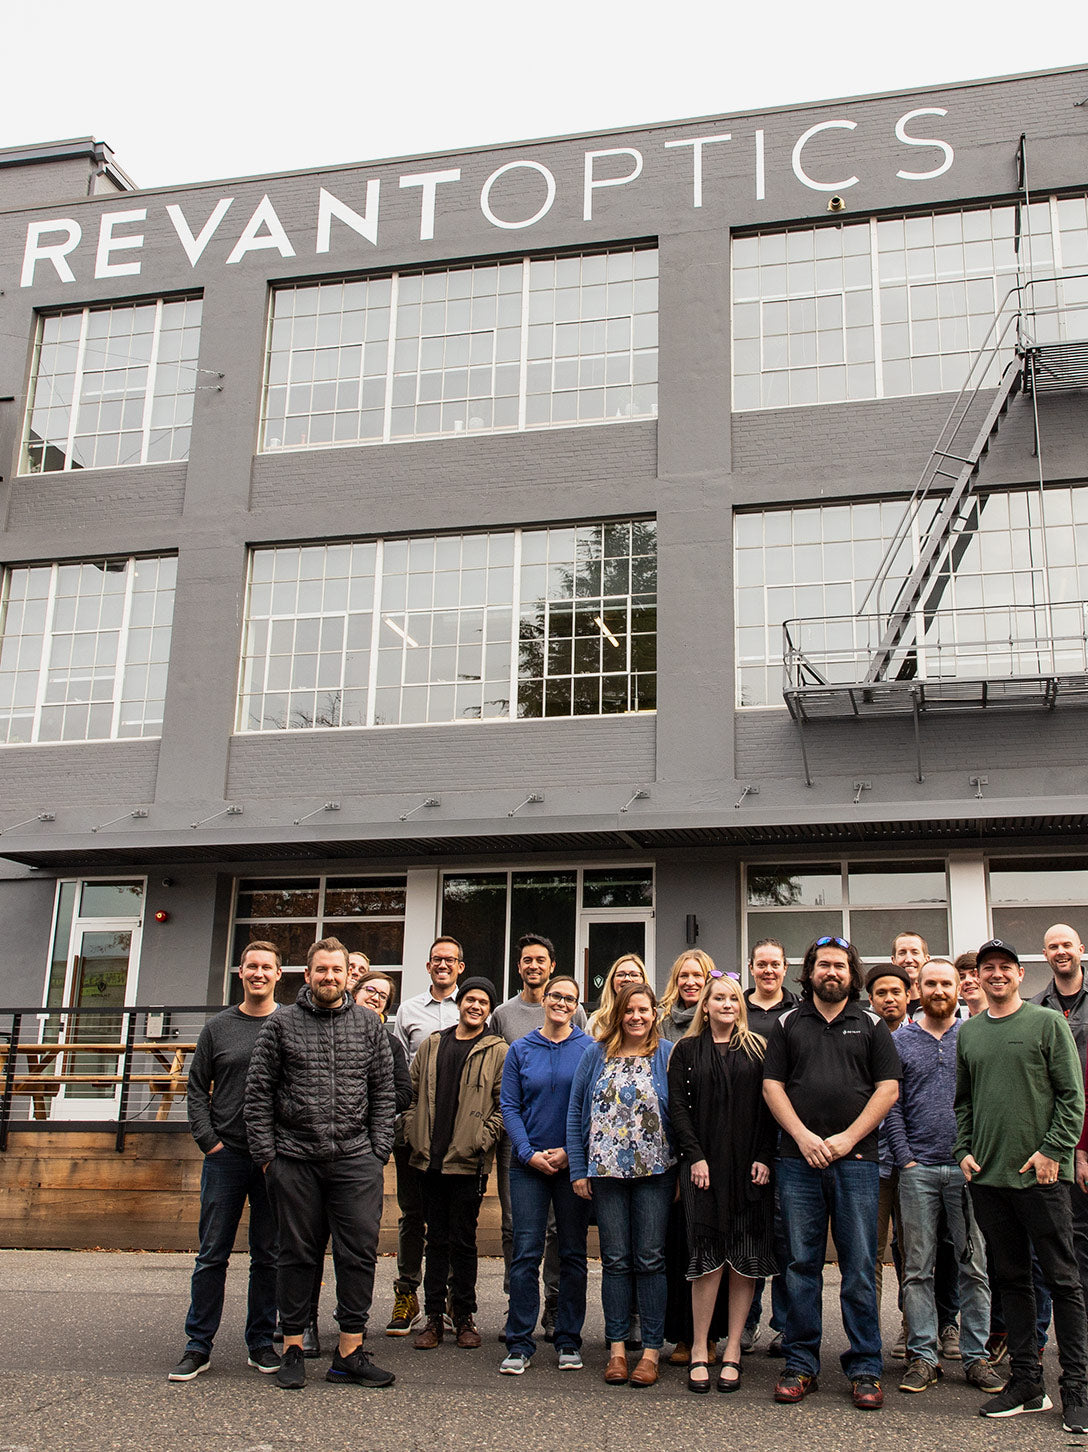 The Revant team in front of the Revant office